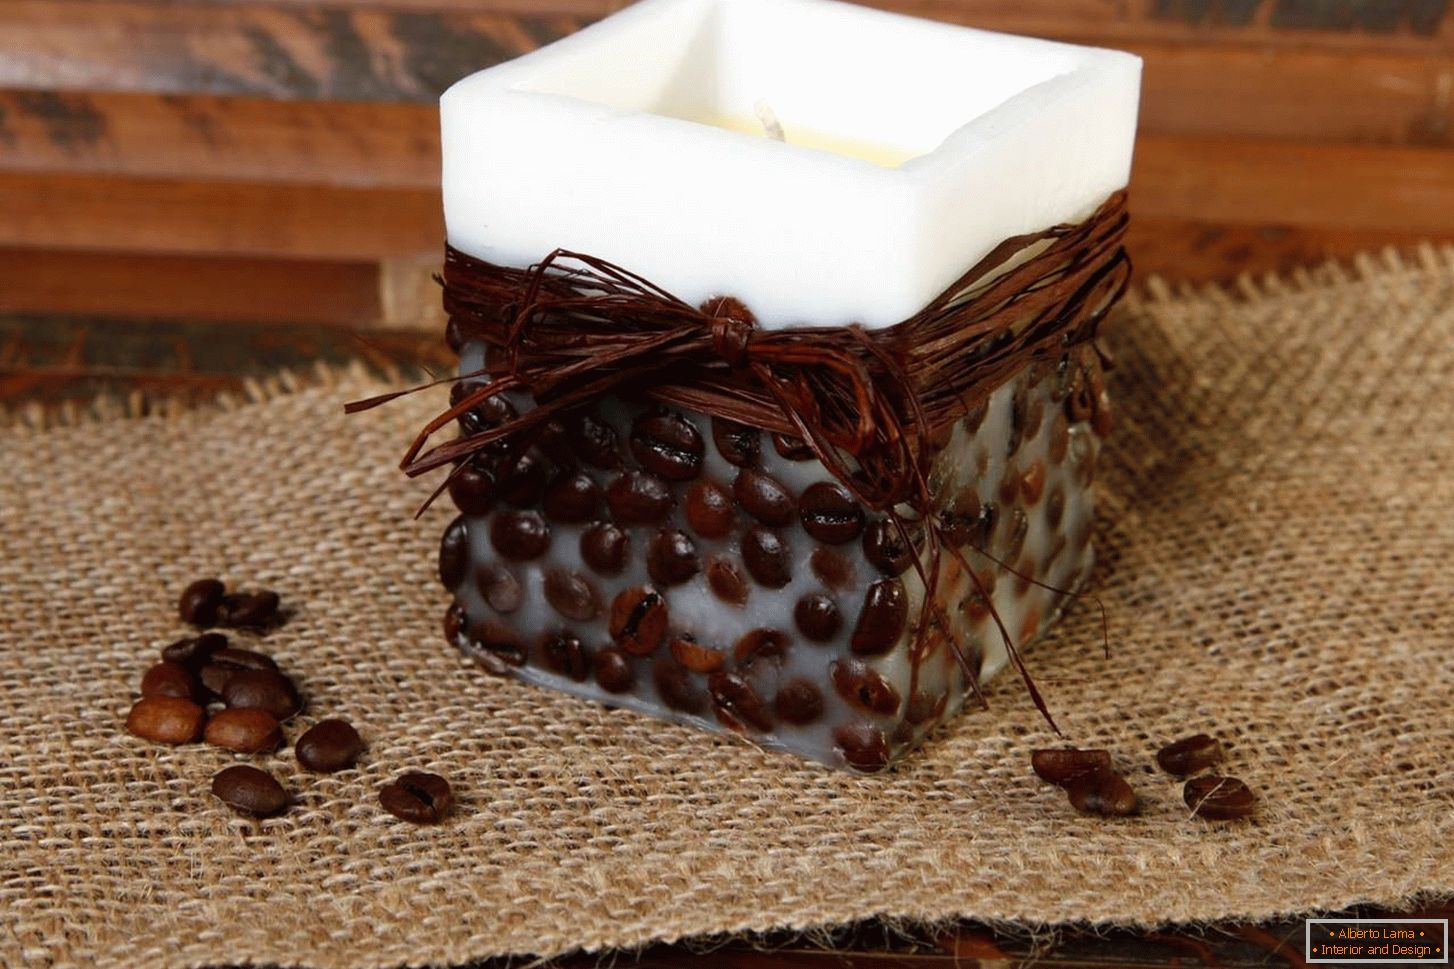 Decorating candles with coffee beans